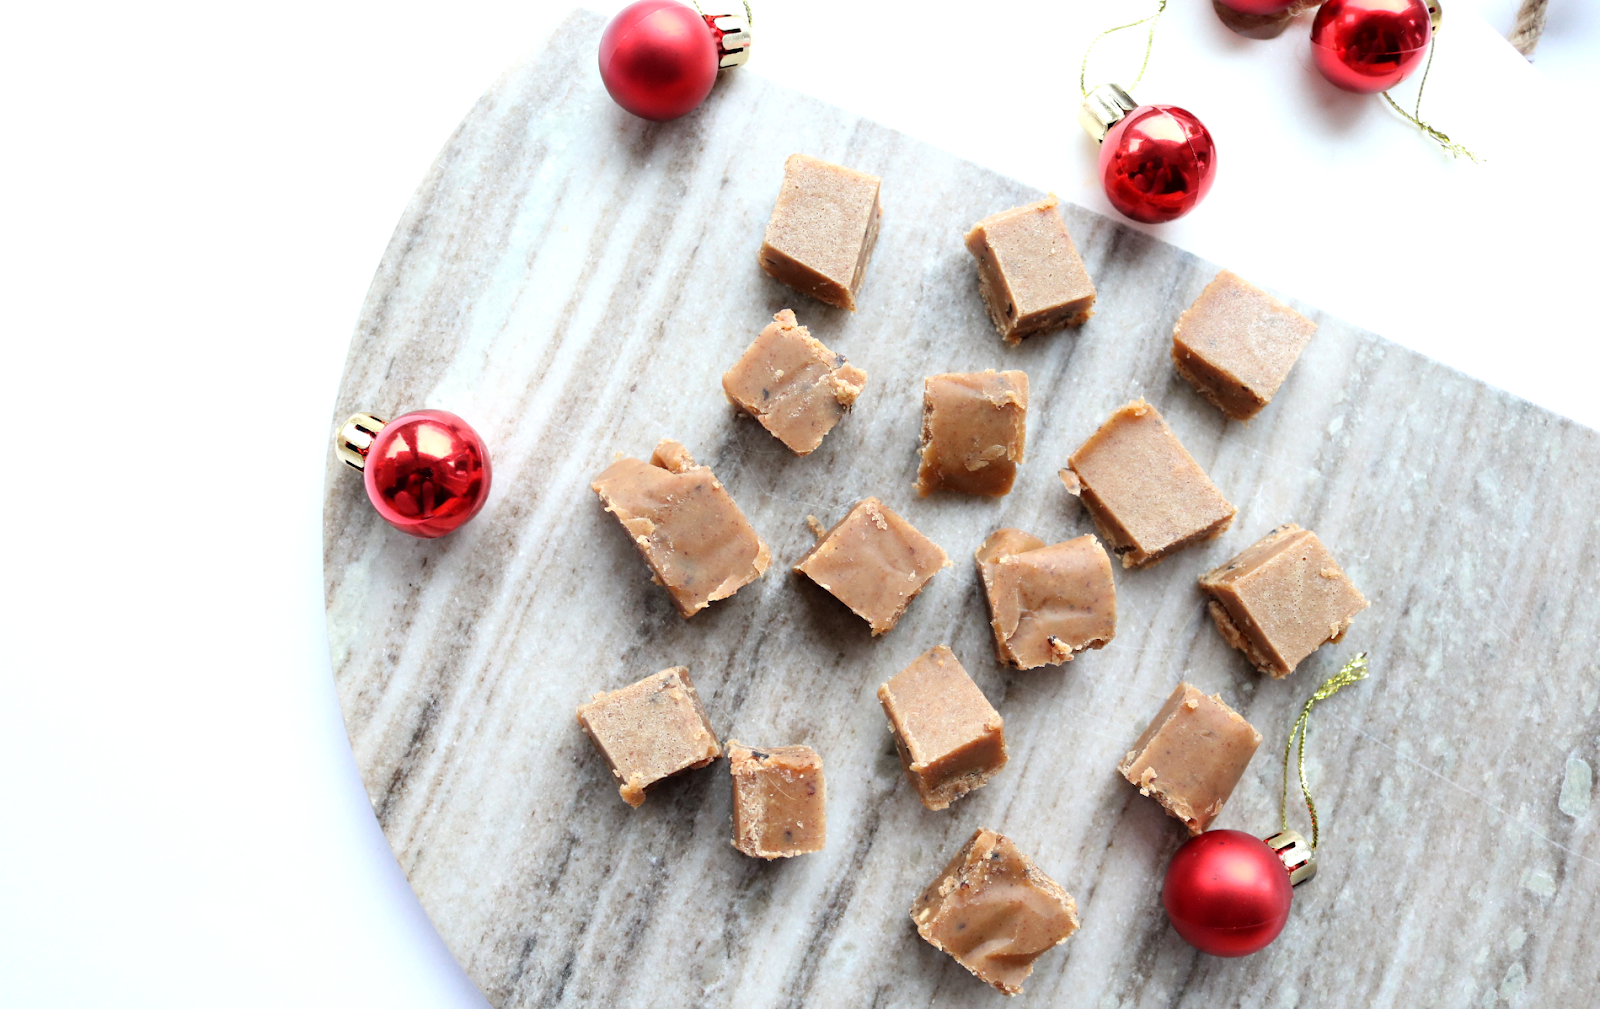 Almond & Cranberry Fudge (Vegan / Dairy-Free recipe)